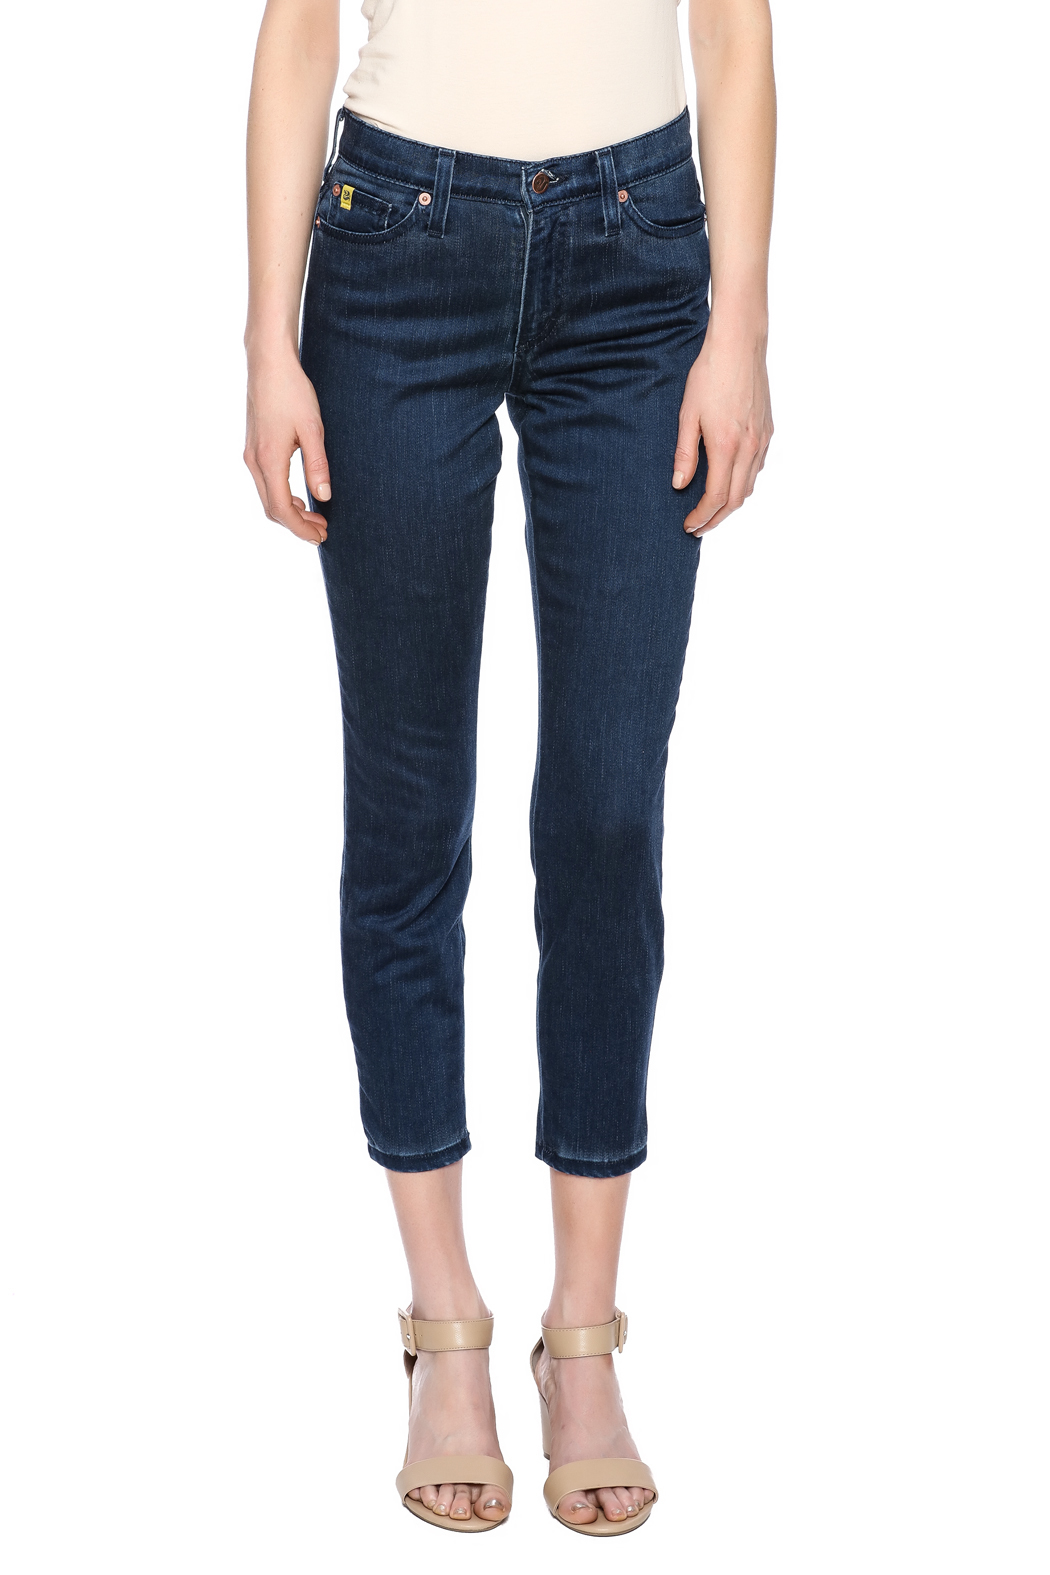 Second Yoga Jeans Softest High Rise Jean - Side Cropped Image